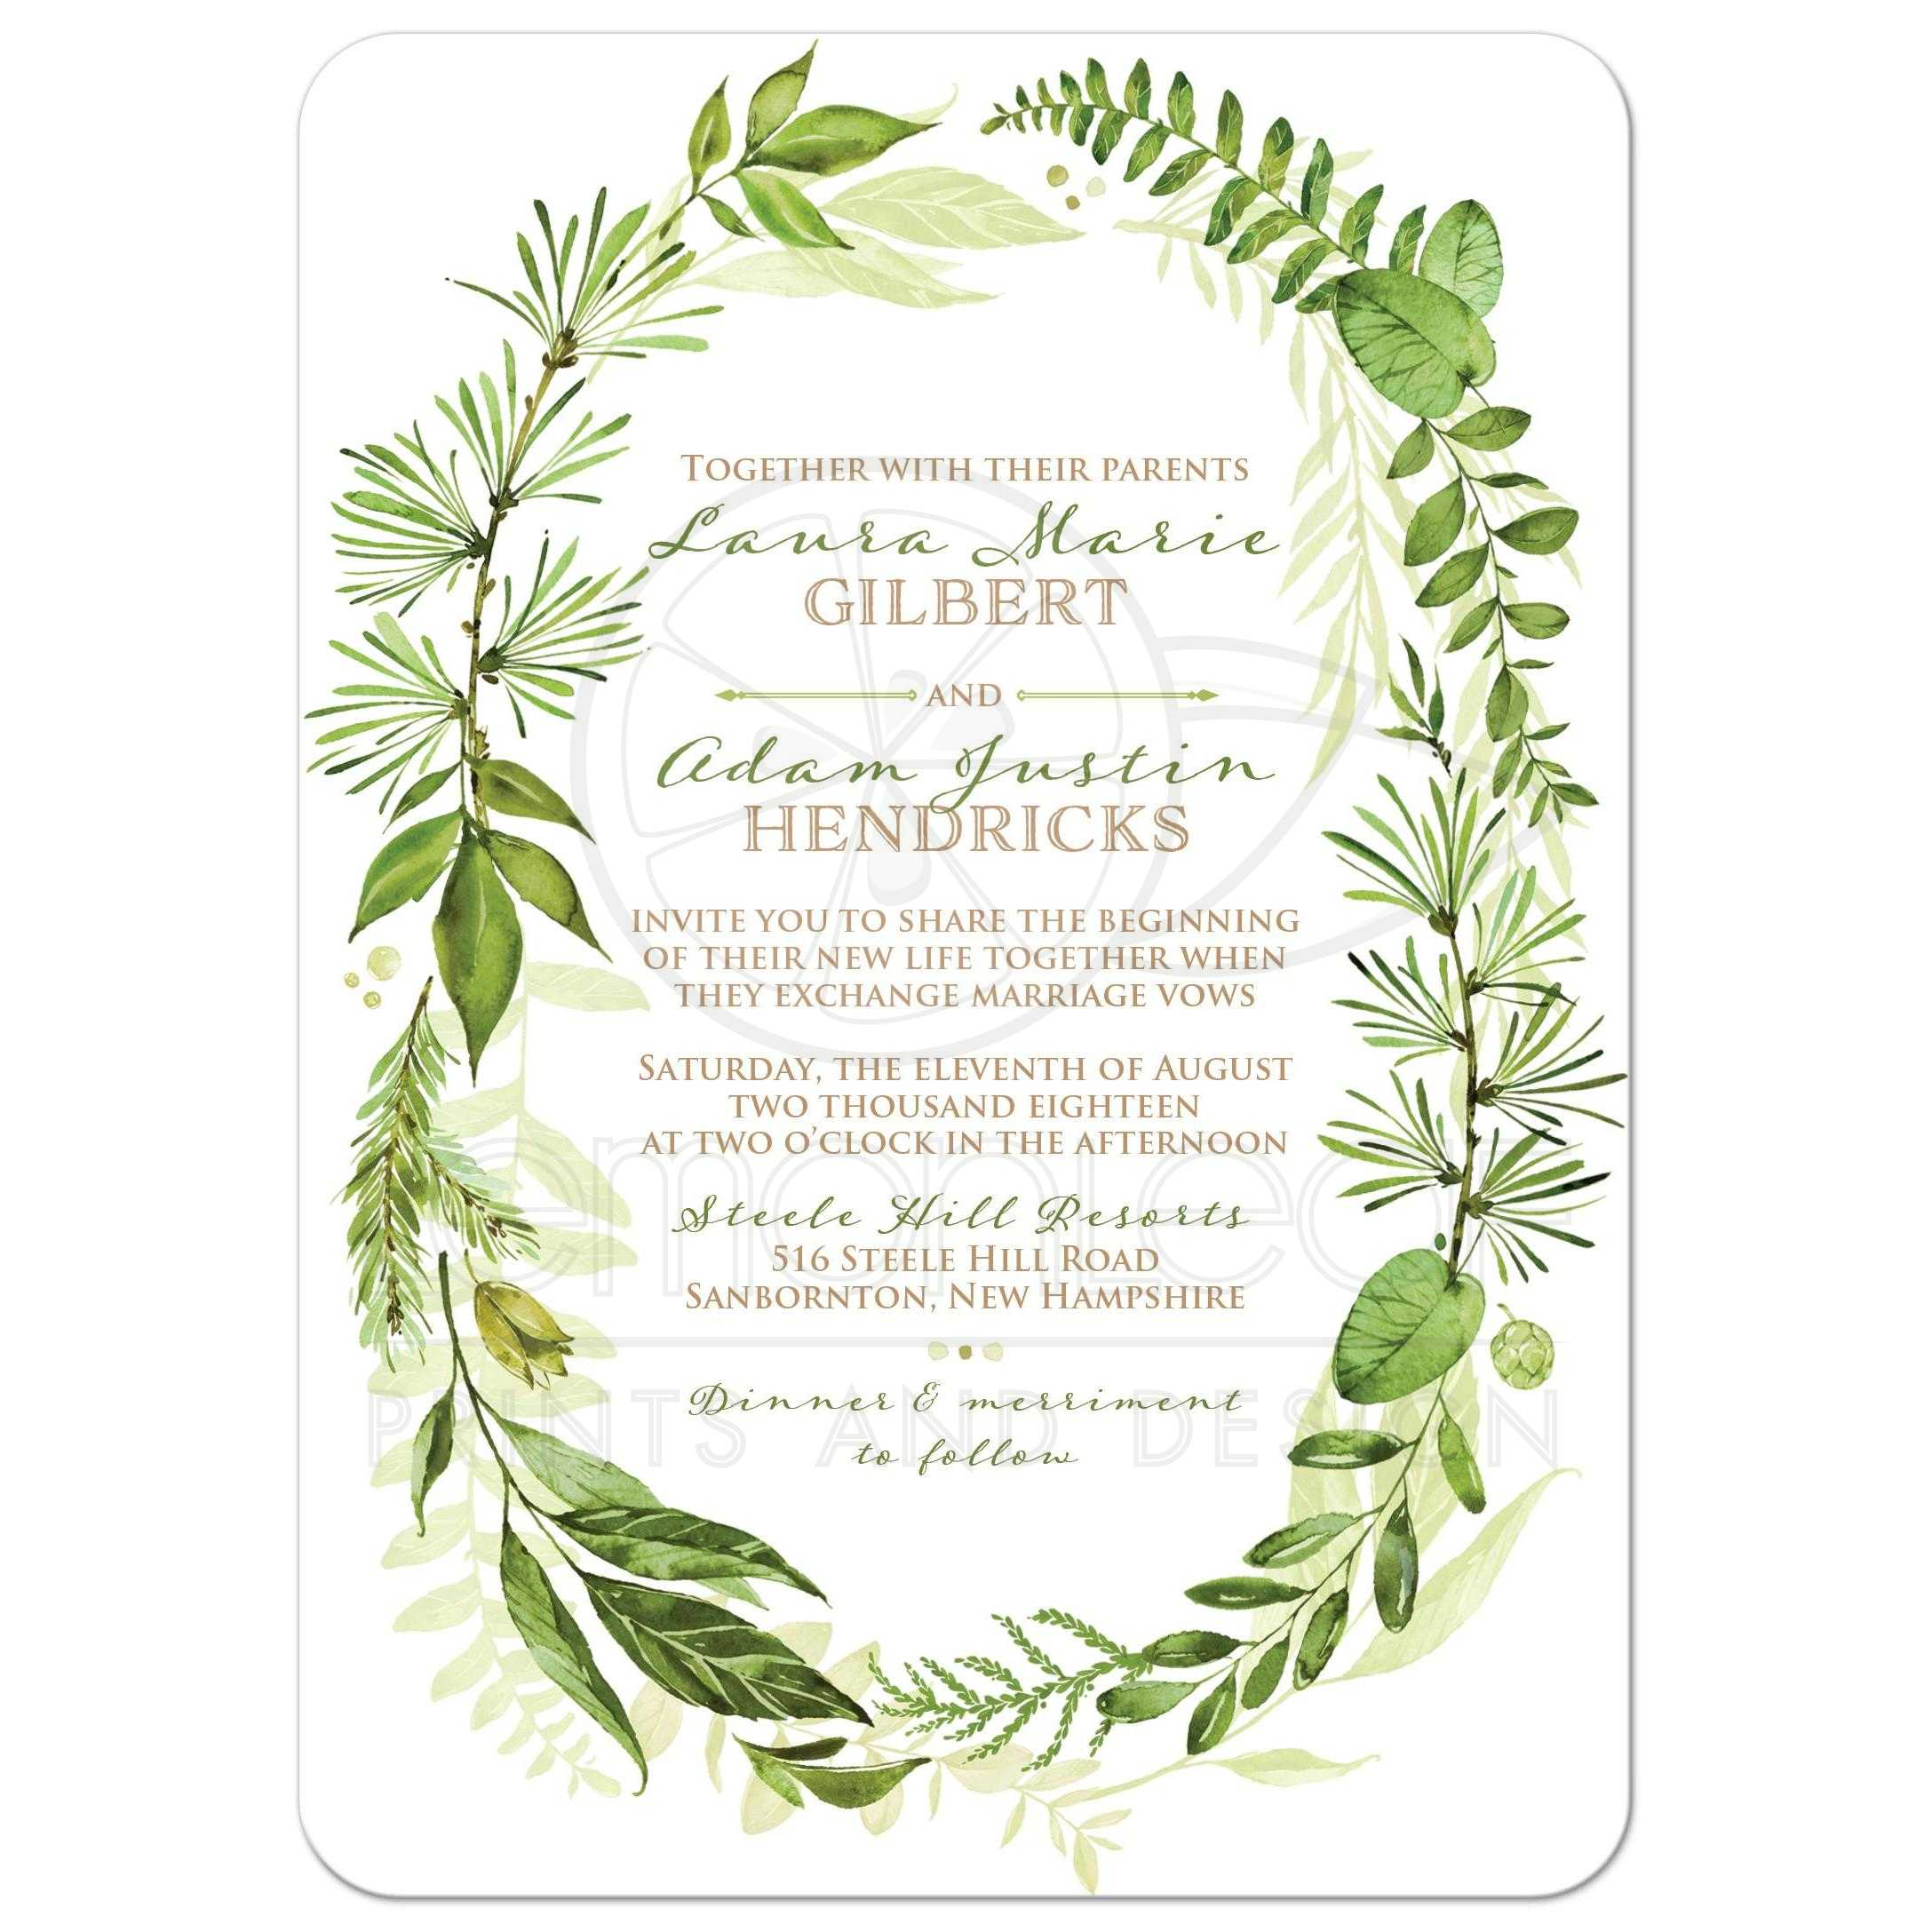 Rustic Winter Wedding Invitations is best invitation template